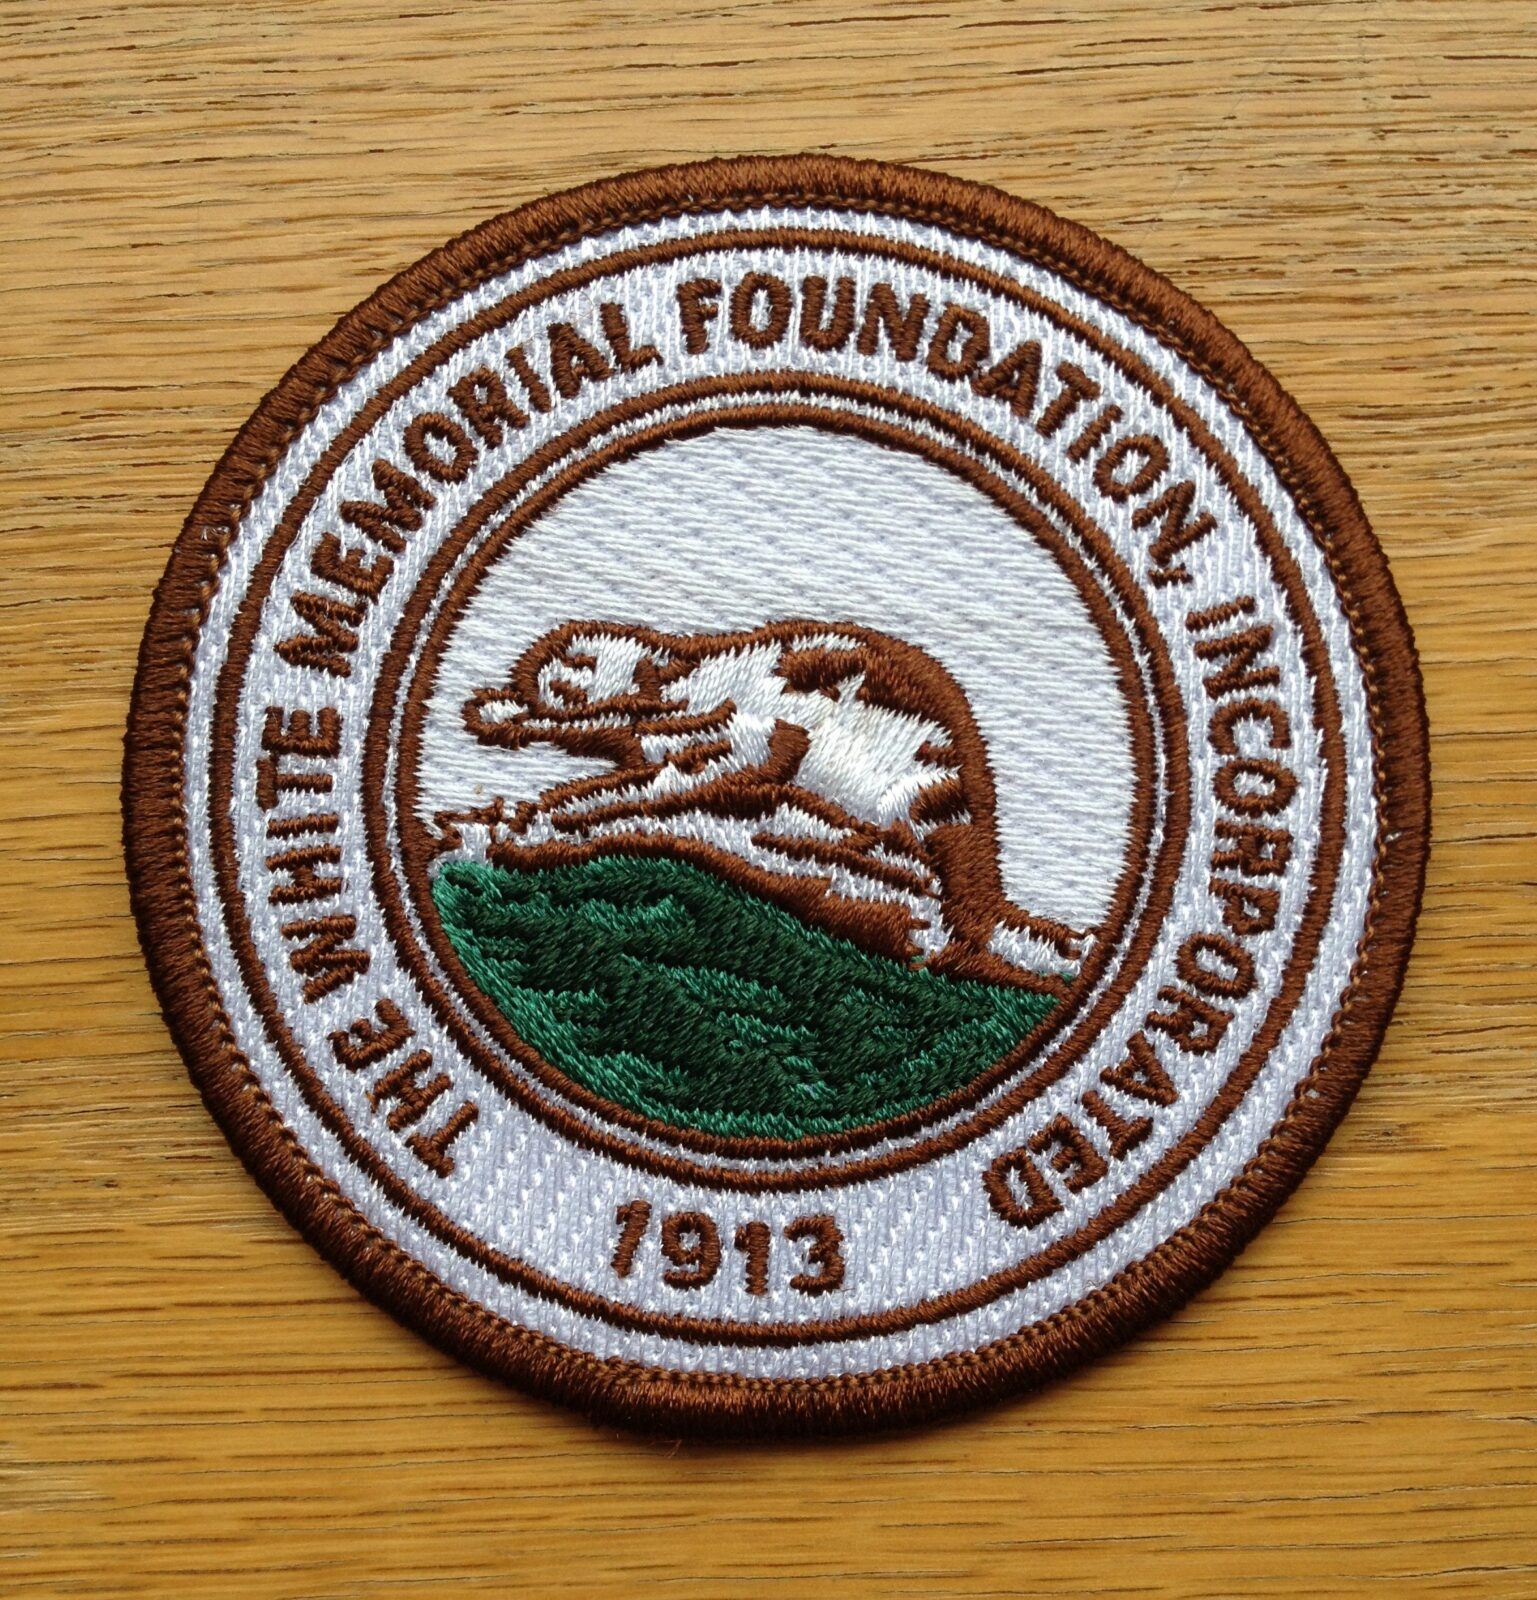 gift-shop-patch-1.jpg